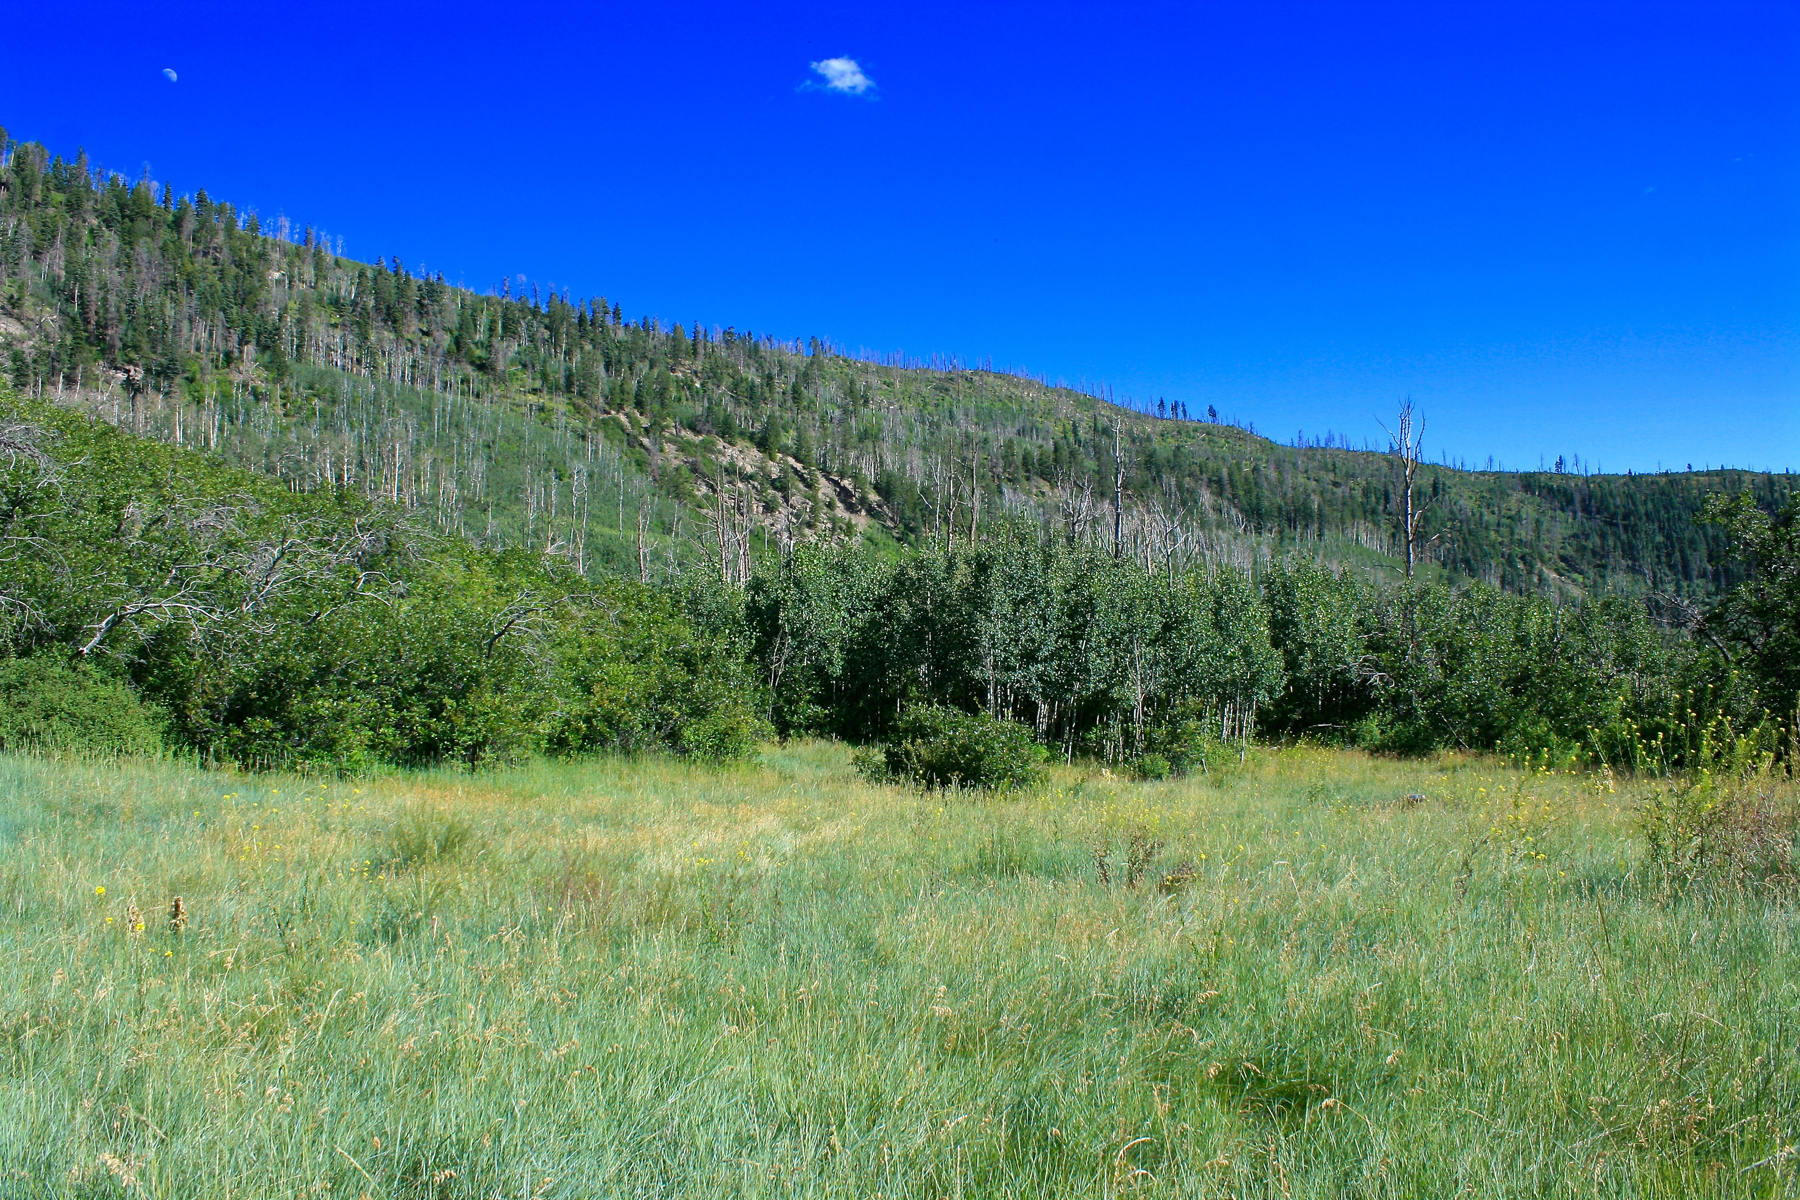 Land for Sale at Red Tail Mountain Ranch Lot 19 464 Star Peak Durango, Colorado, 81301 United States